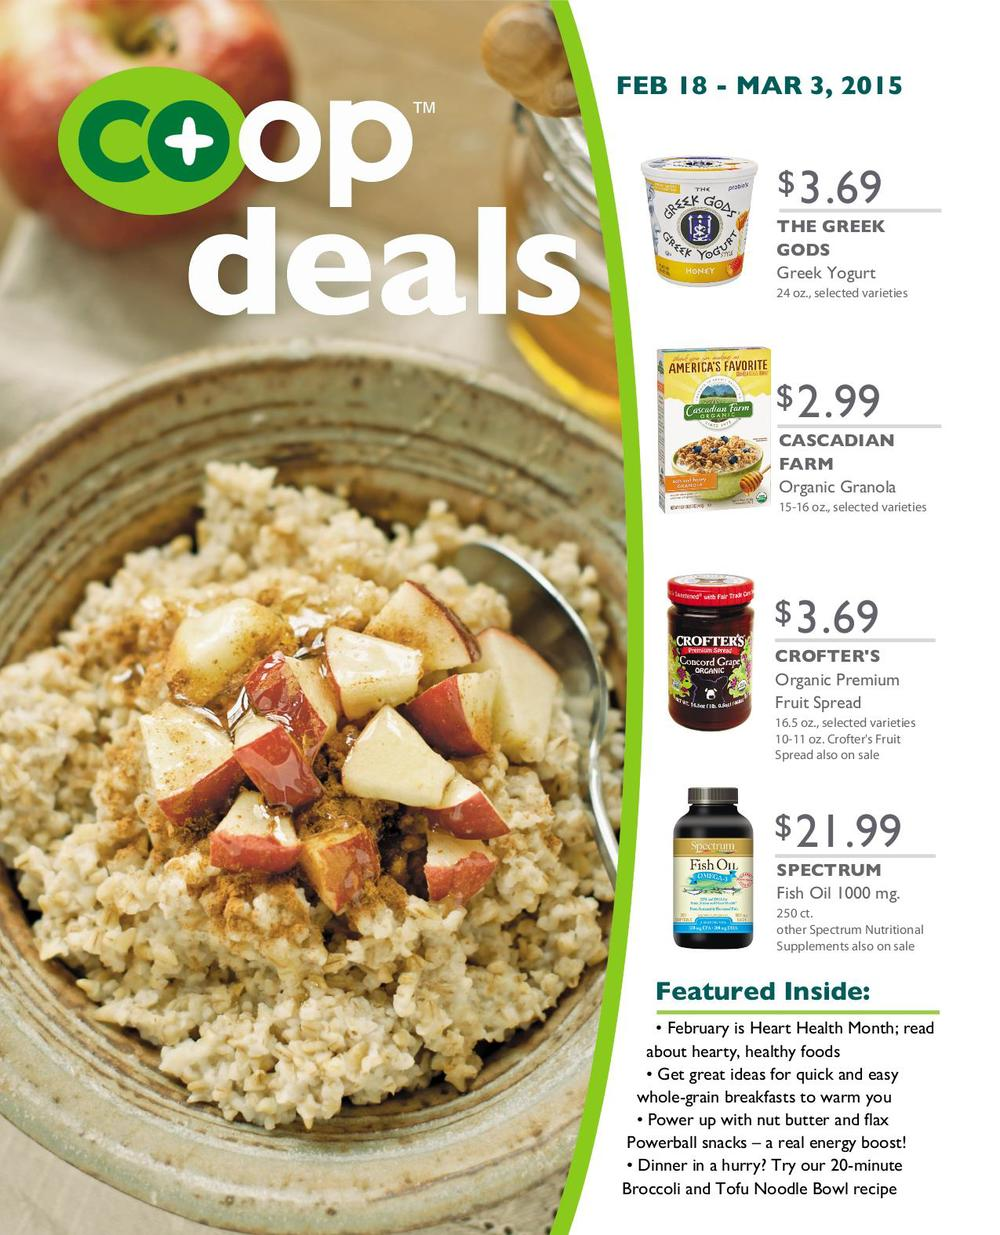 Co+op Deals, February 18-March 3, 2015